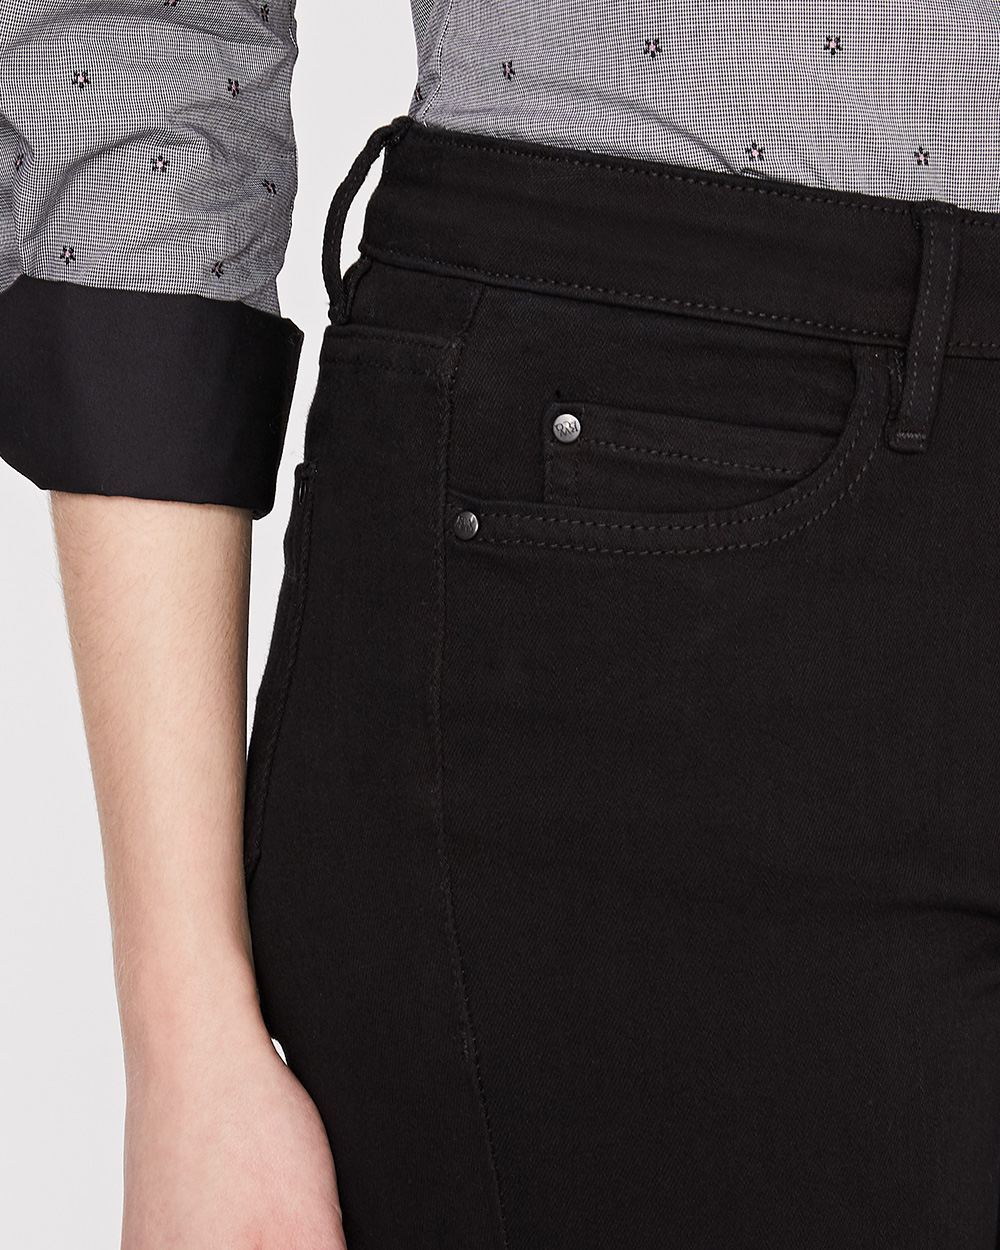 High-waisted extreme 360 stretch black skinny jeans